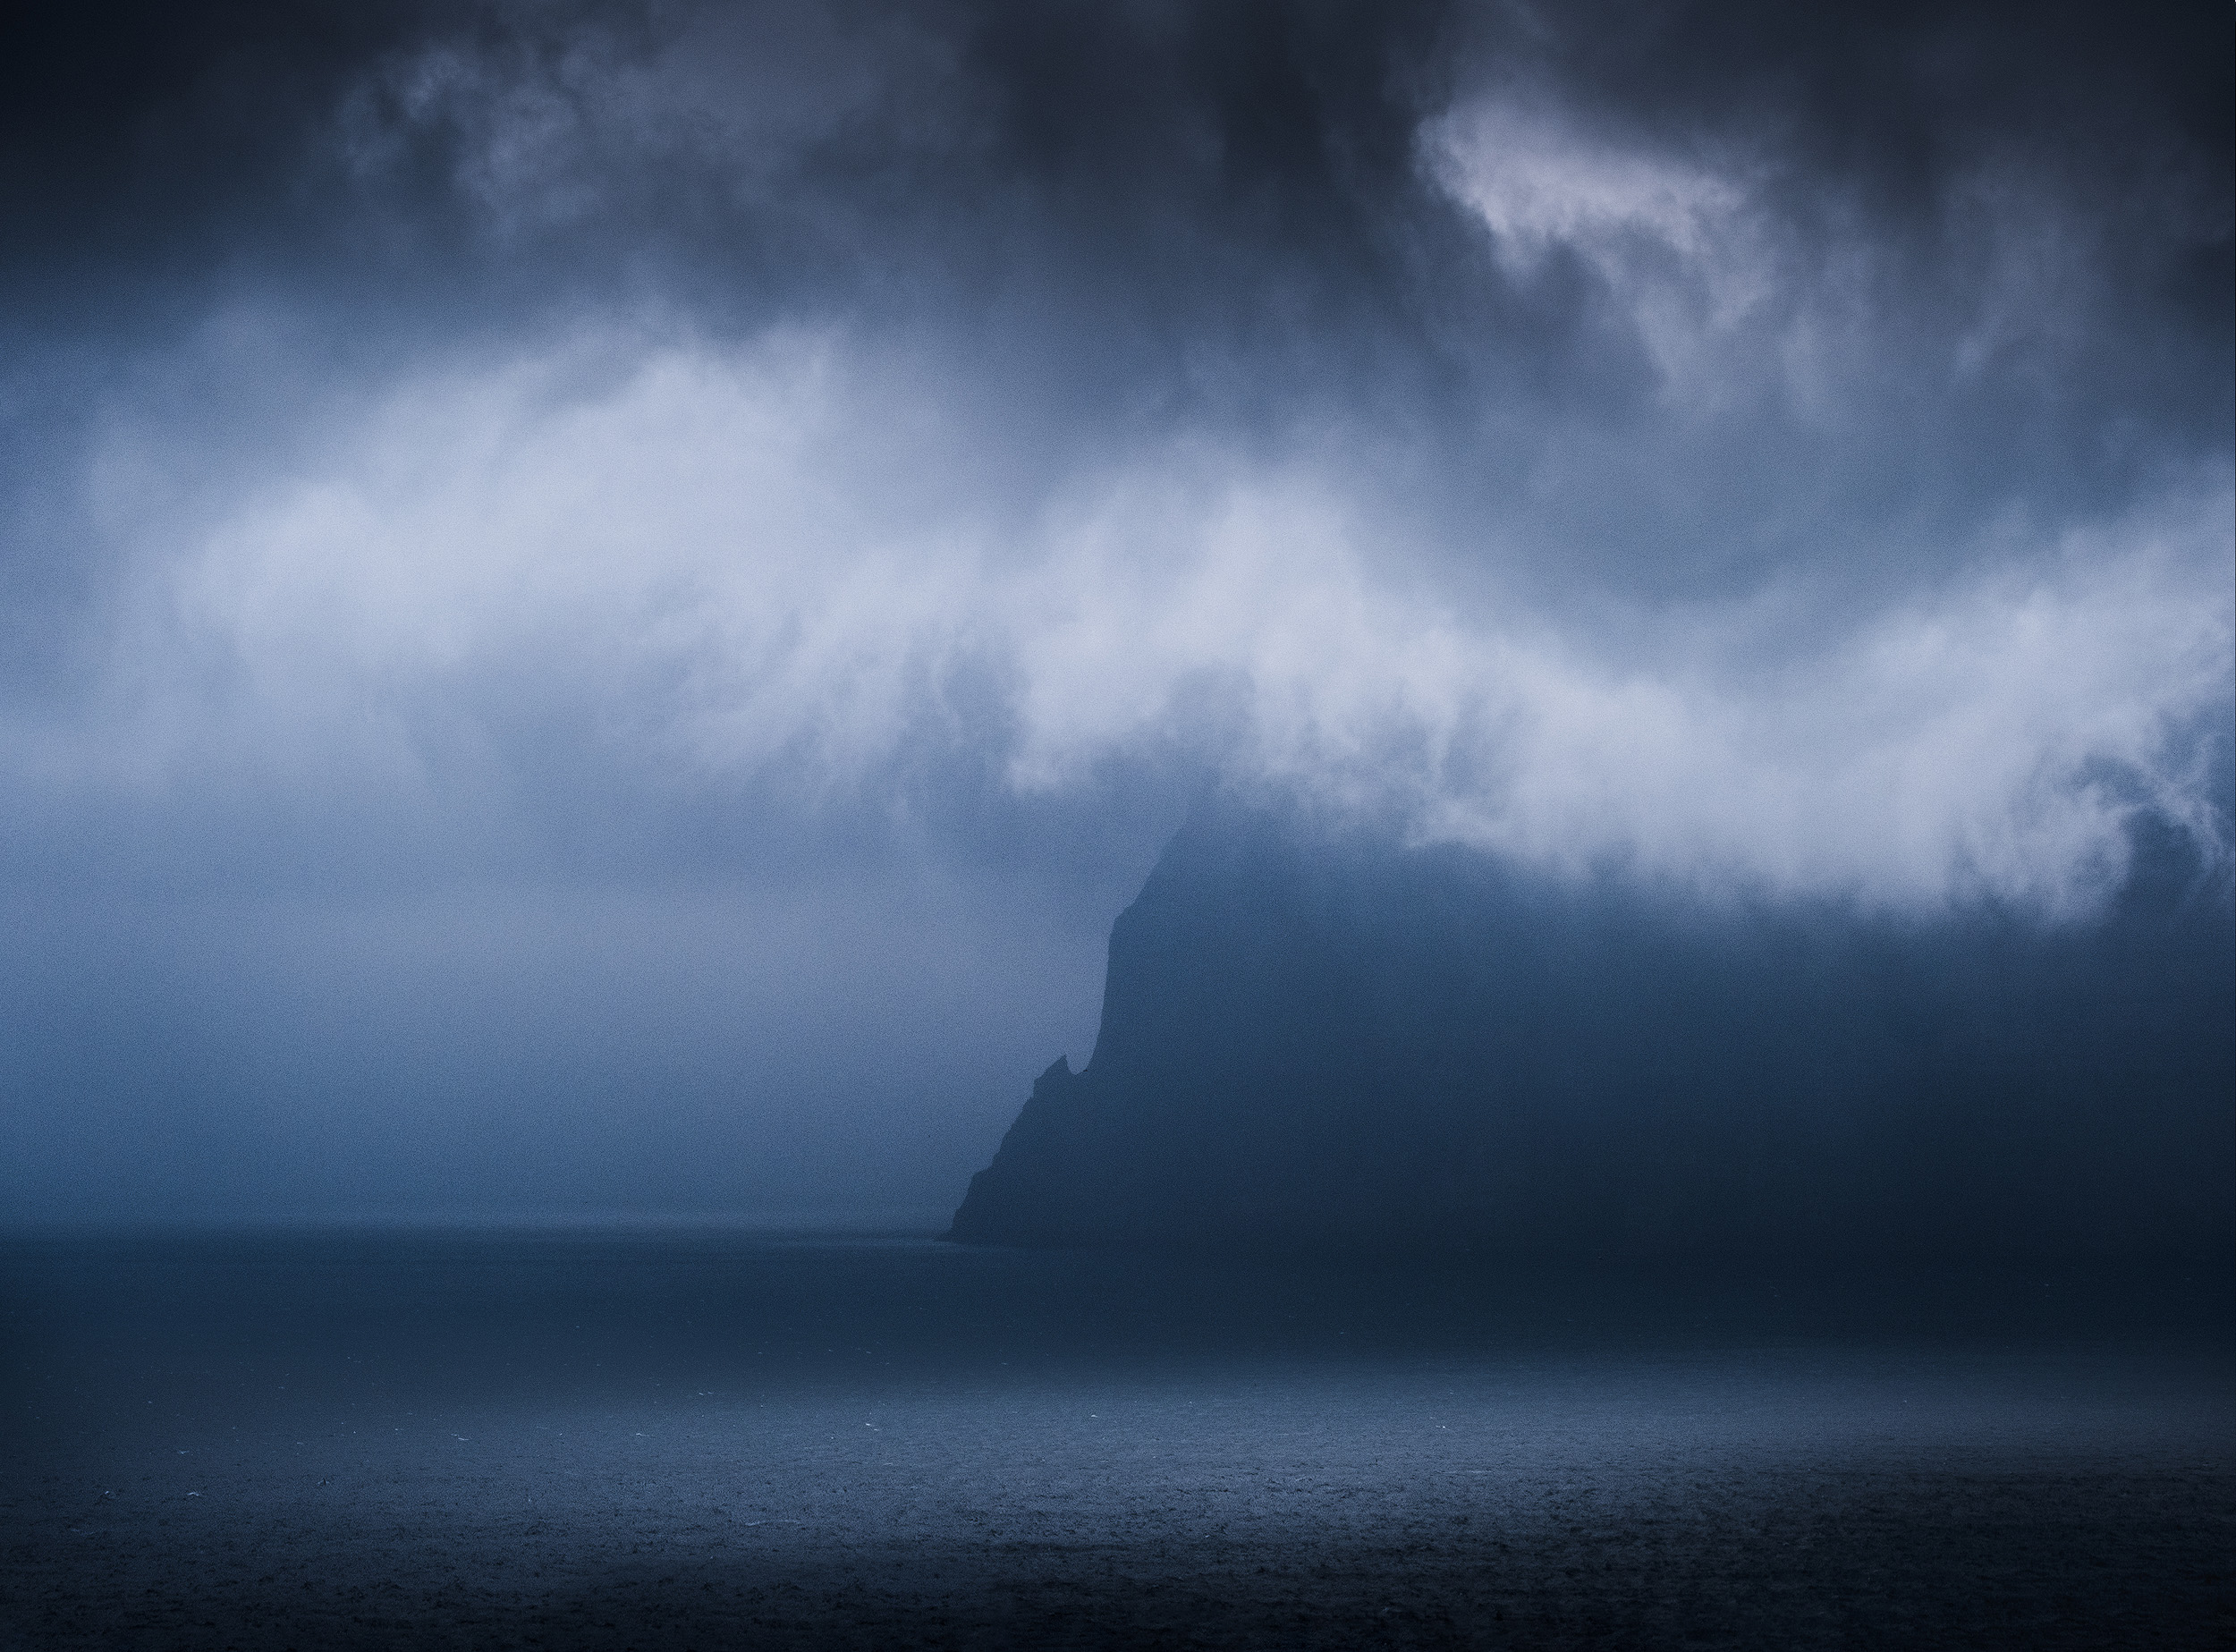 Kunoy   Storm clouds around the island of Kunoy, as seen from Trøllanes on neighbouring Kalsoy